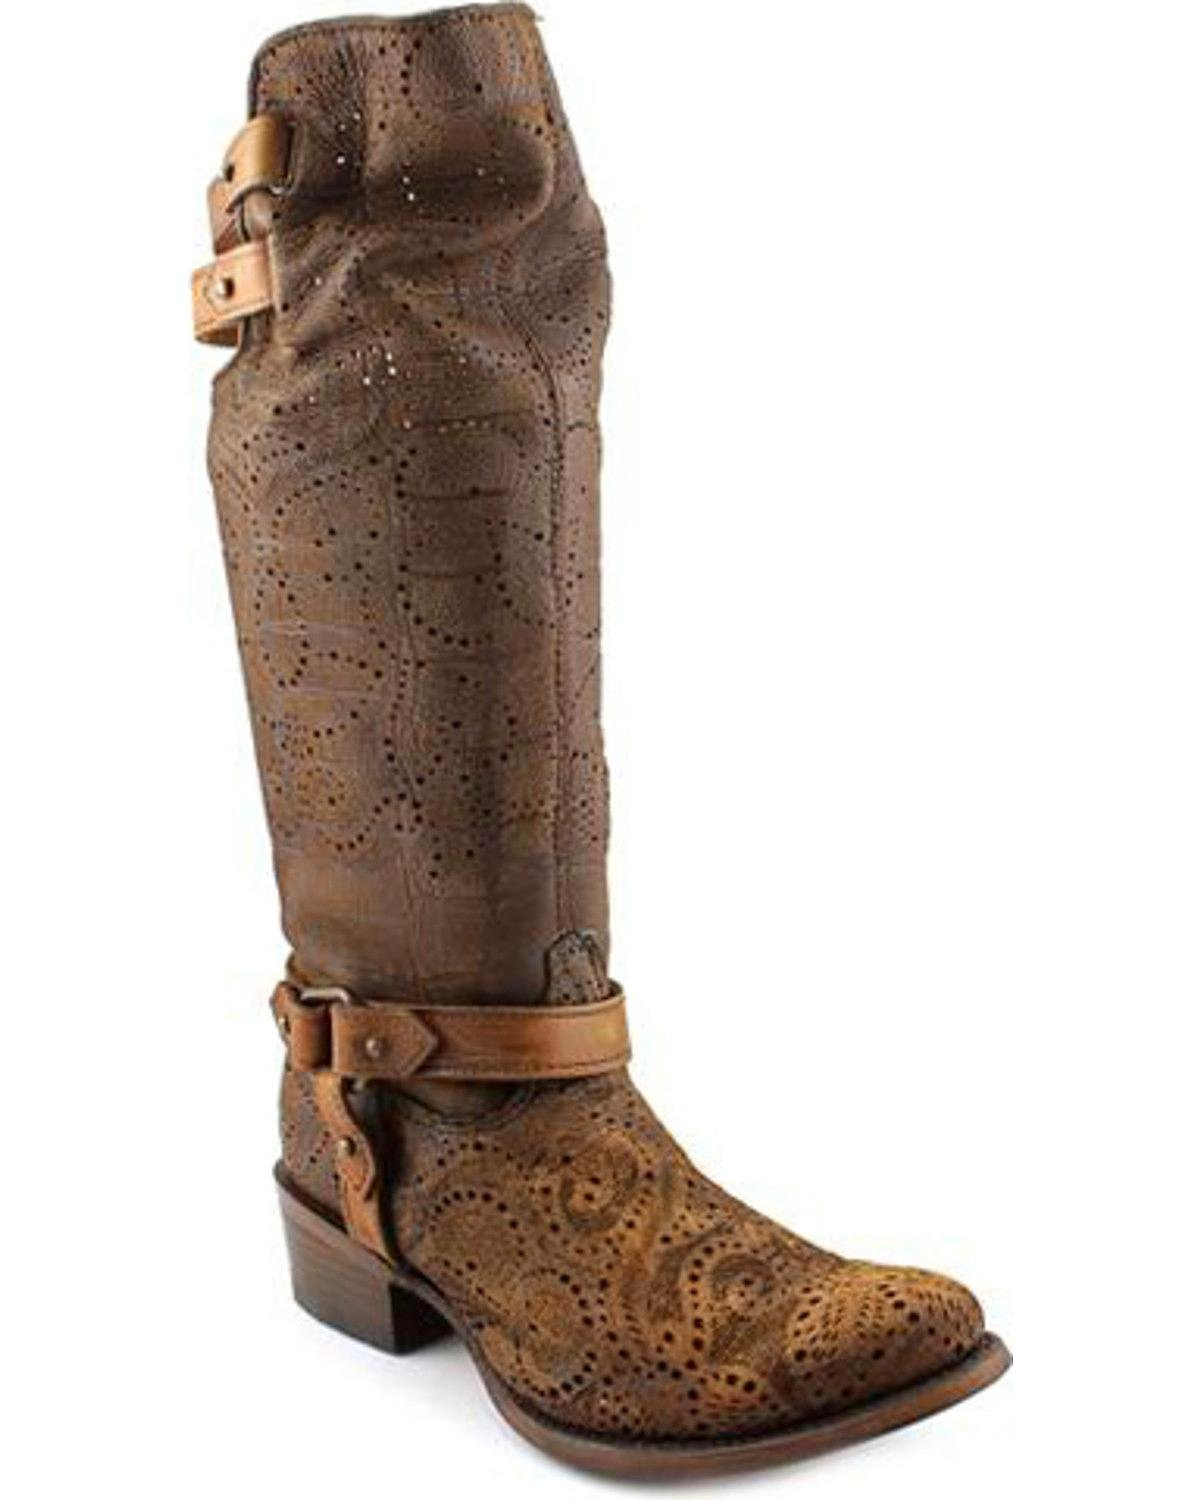 Corral Women's Chocolate Slouch Harness And Top Strap Cowgirl Boot Medium Toe Chocolate 8.5 M